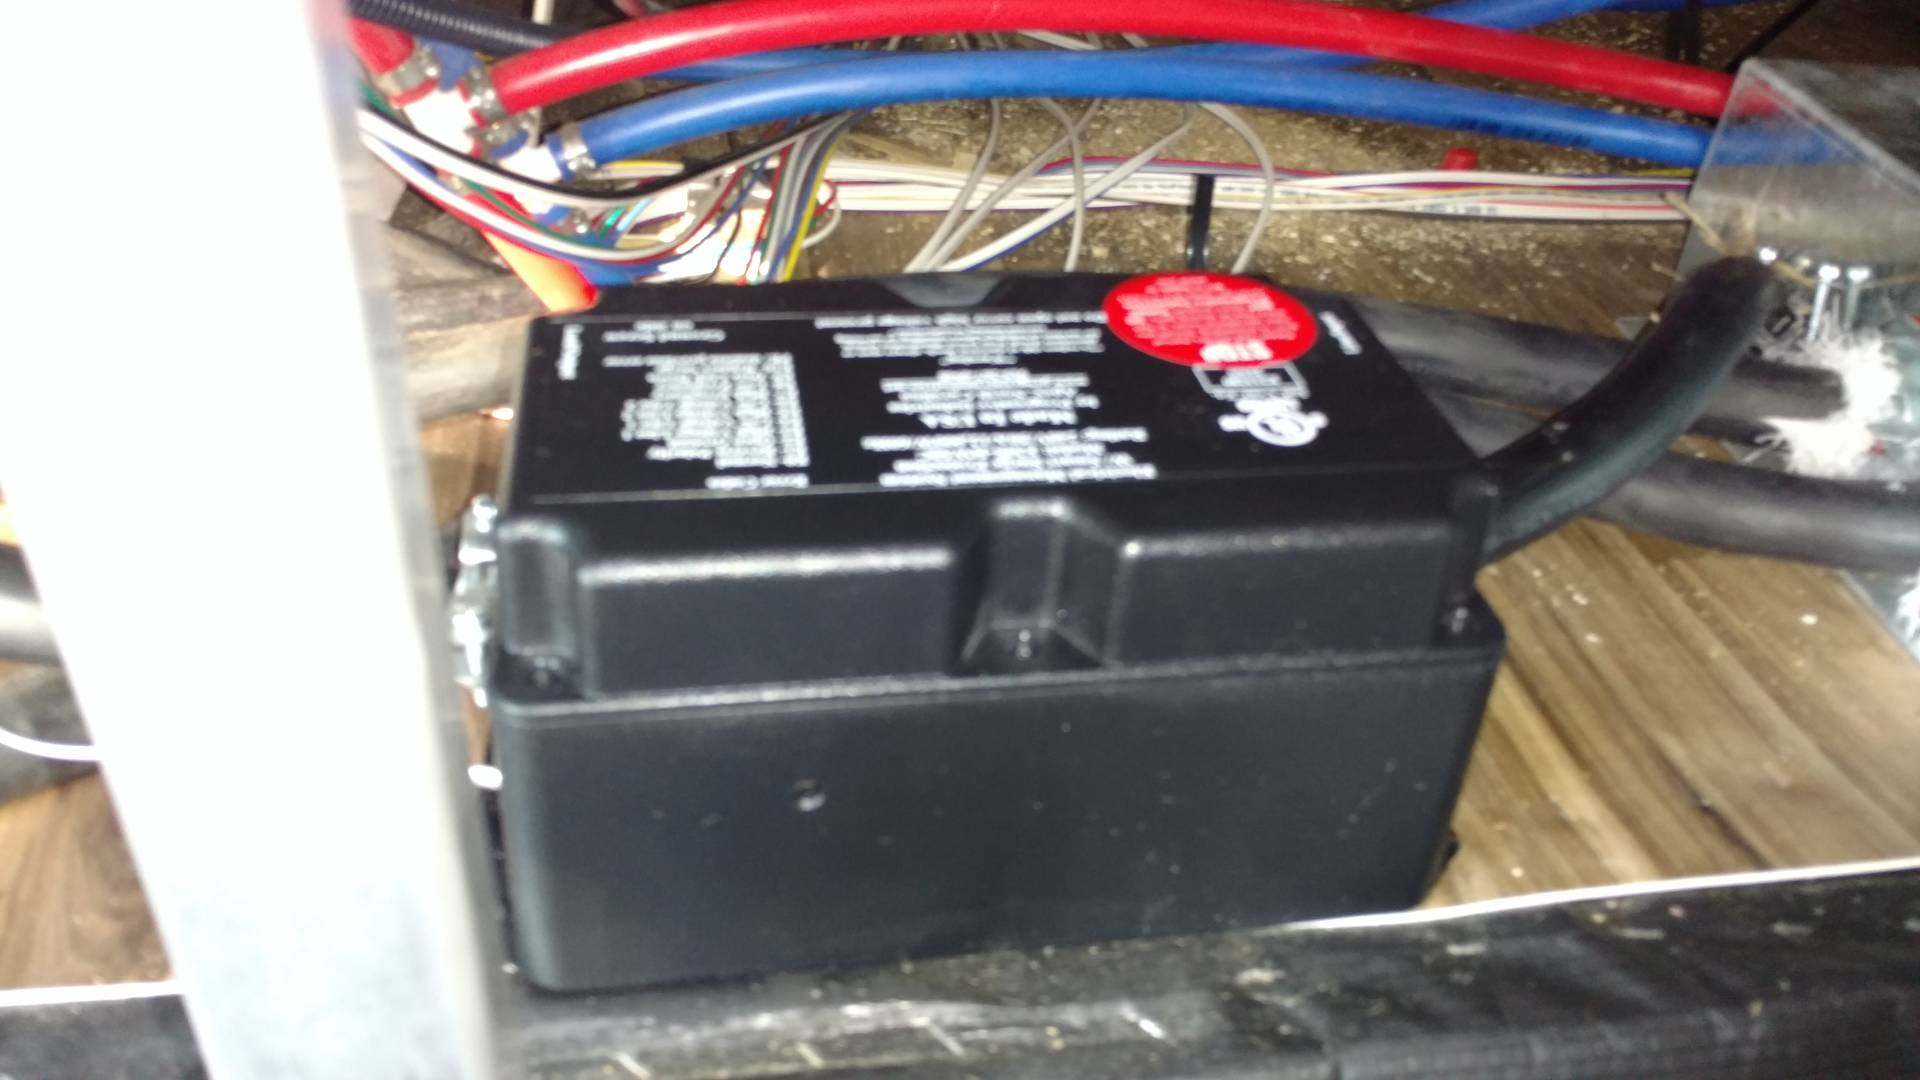 Rv Mods Life En Route Home Trailer Hitches Hitch Wiring Curt Adapters Duplex In Addition To Detecting Several Types Of Electrical Faults It Displays The Voltage And Current On Each Leg As Well Any Panel That I